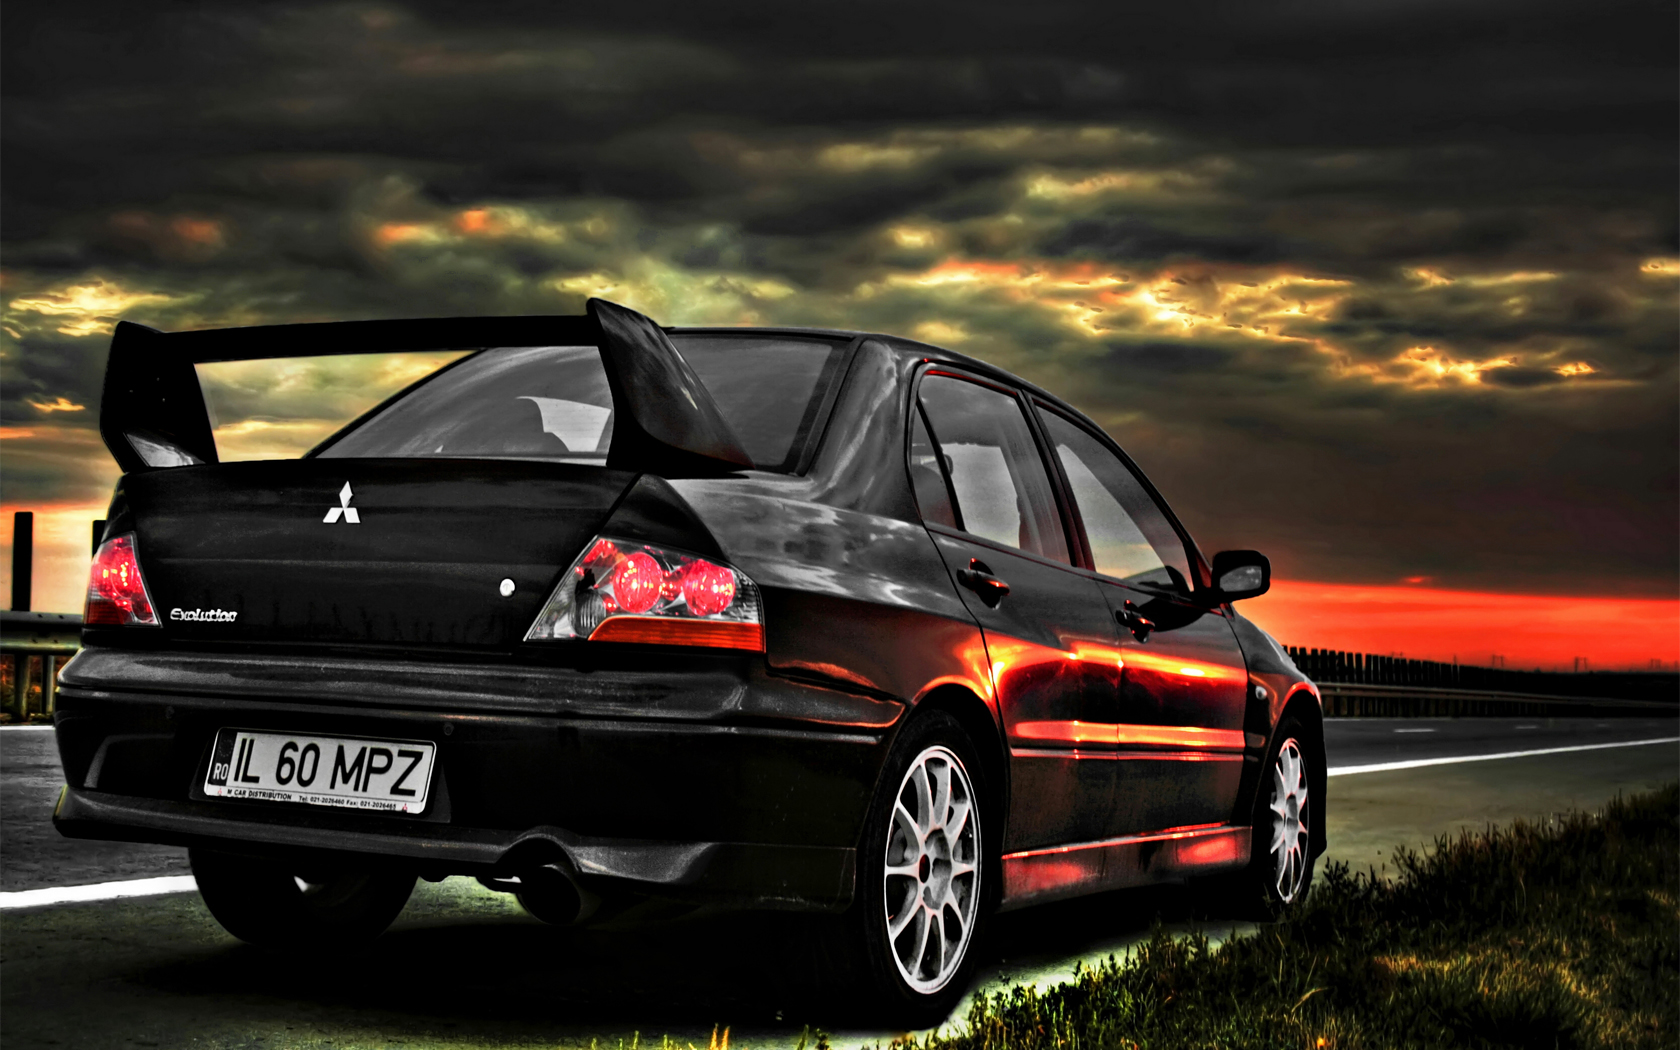 Mitsubishi Evo HD Wallpaper  WallpaperSafari